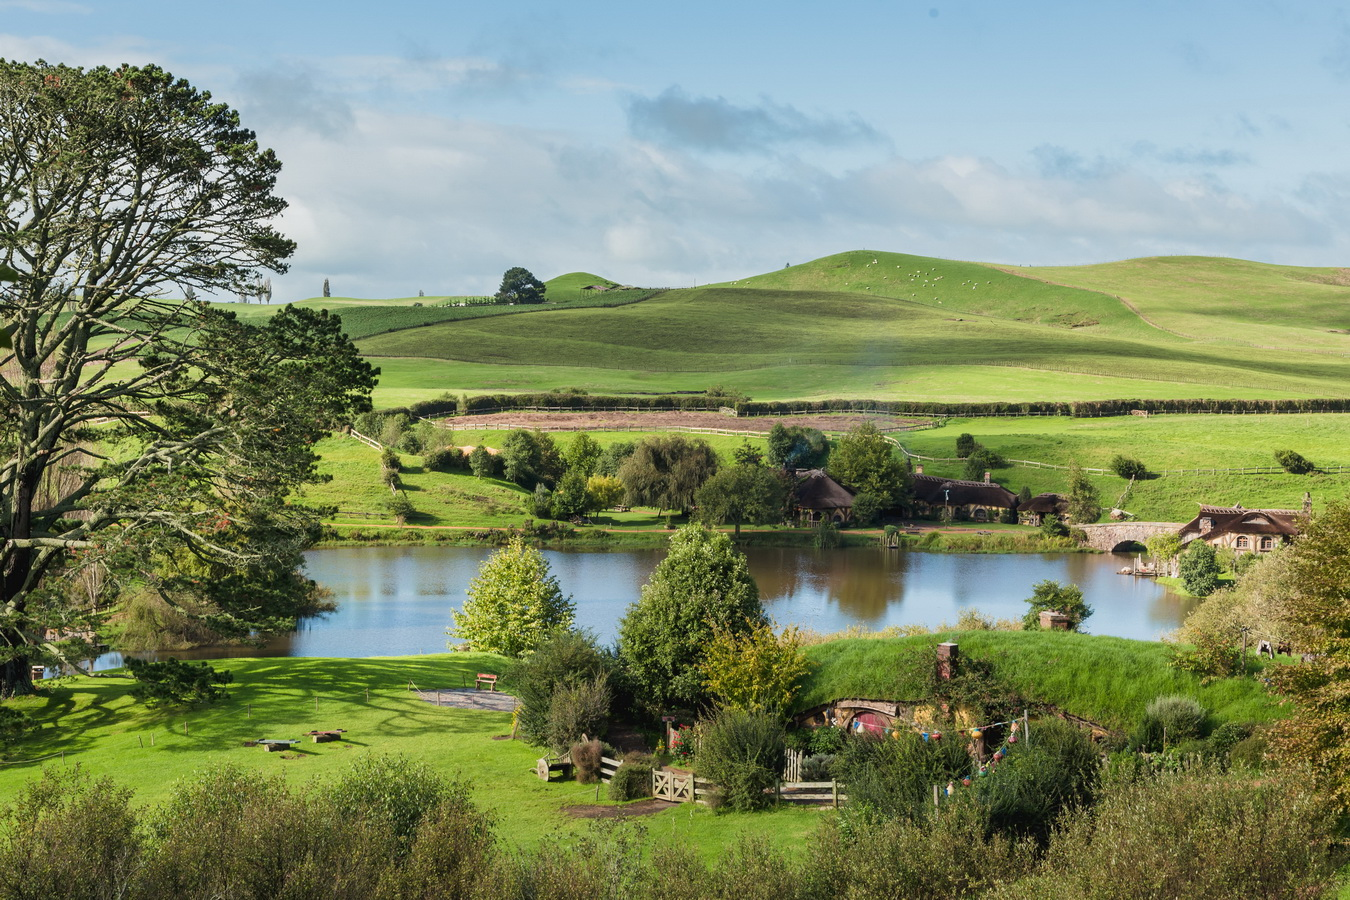 The Hobbiton, The Shire,Хоббитшир, Удел, Хоббитания, Заселье, Край movie set,The Hobbiton, The Shire,Хоббитшир, Удел, Хоббитания, Заселье, Край,Matamata, North Island ,New Zealand